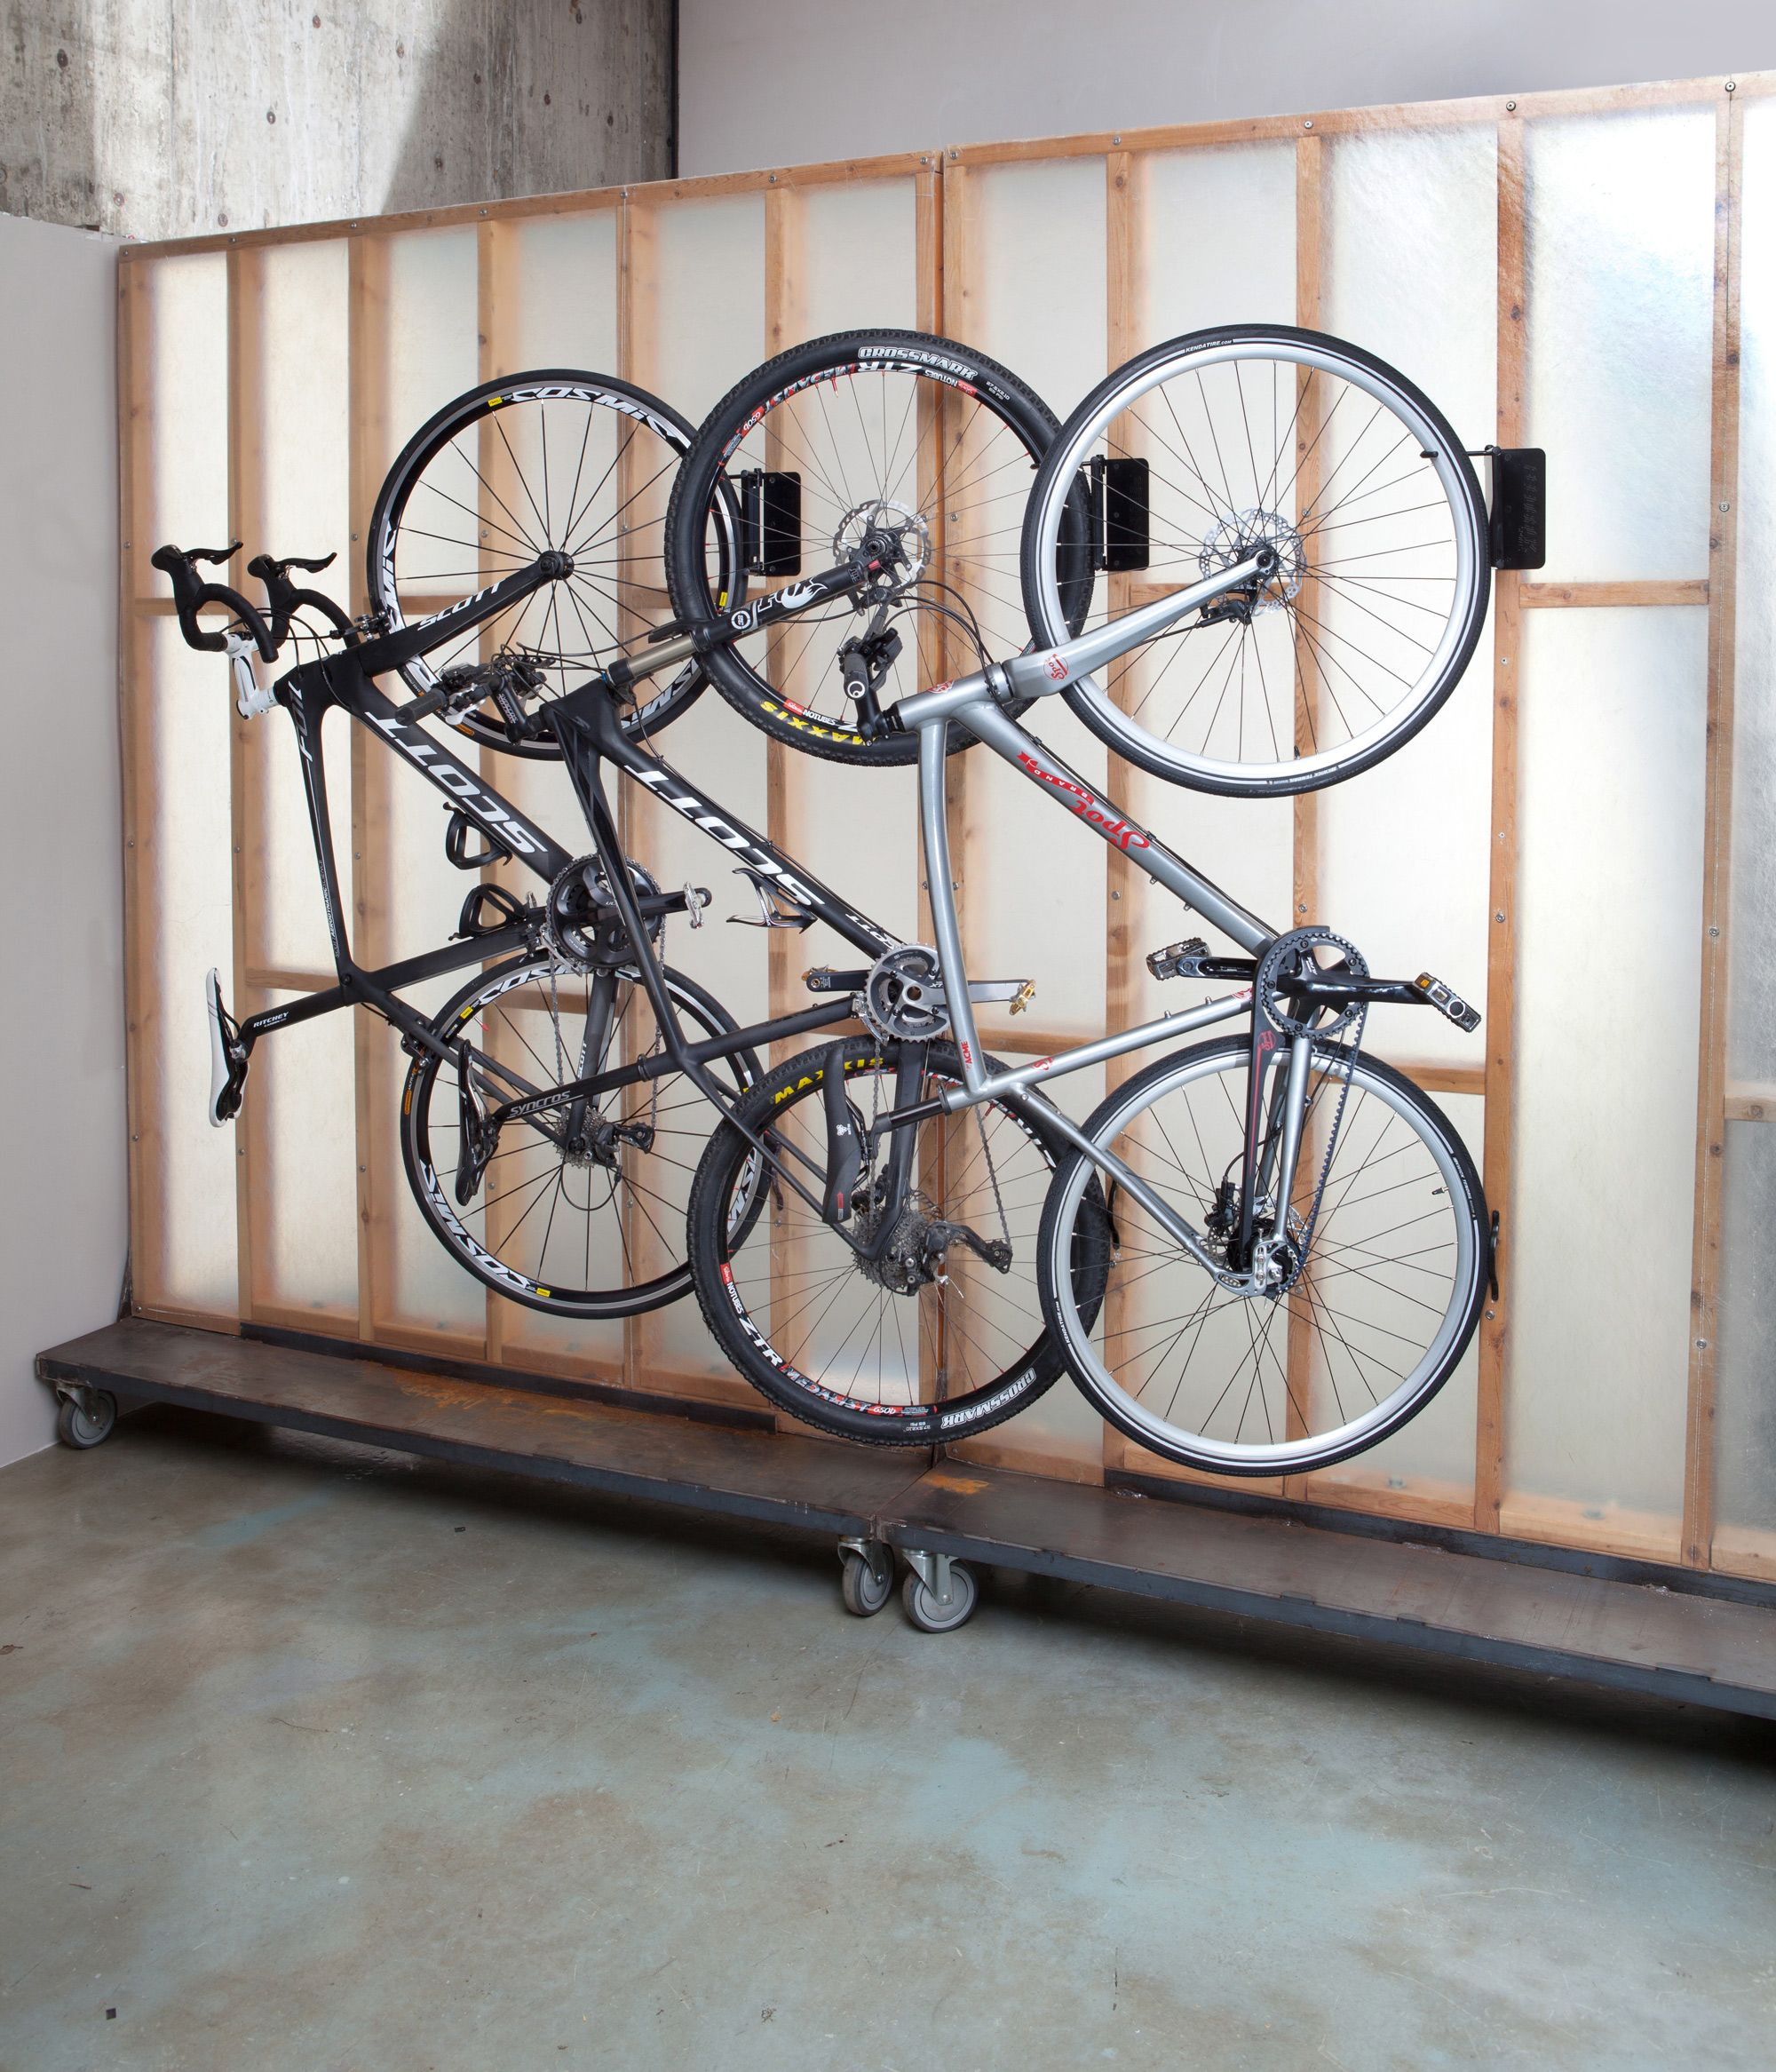 size hang racks pulley wall bike bicycle full cycle solutions system of shelves roof inside garage cabinets tall organizer lift for ideas organization storage rafter ceiling systems shed hanging rack